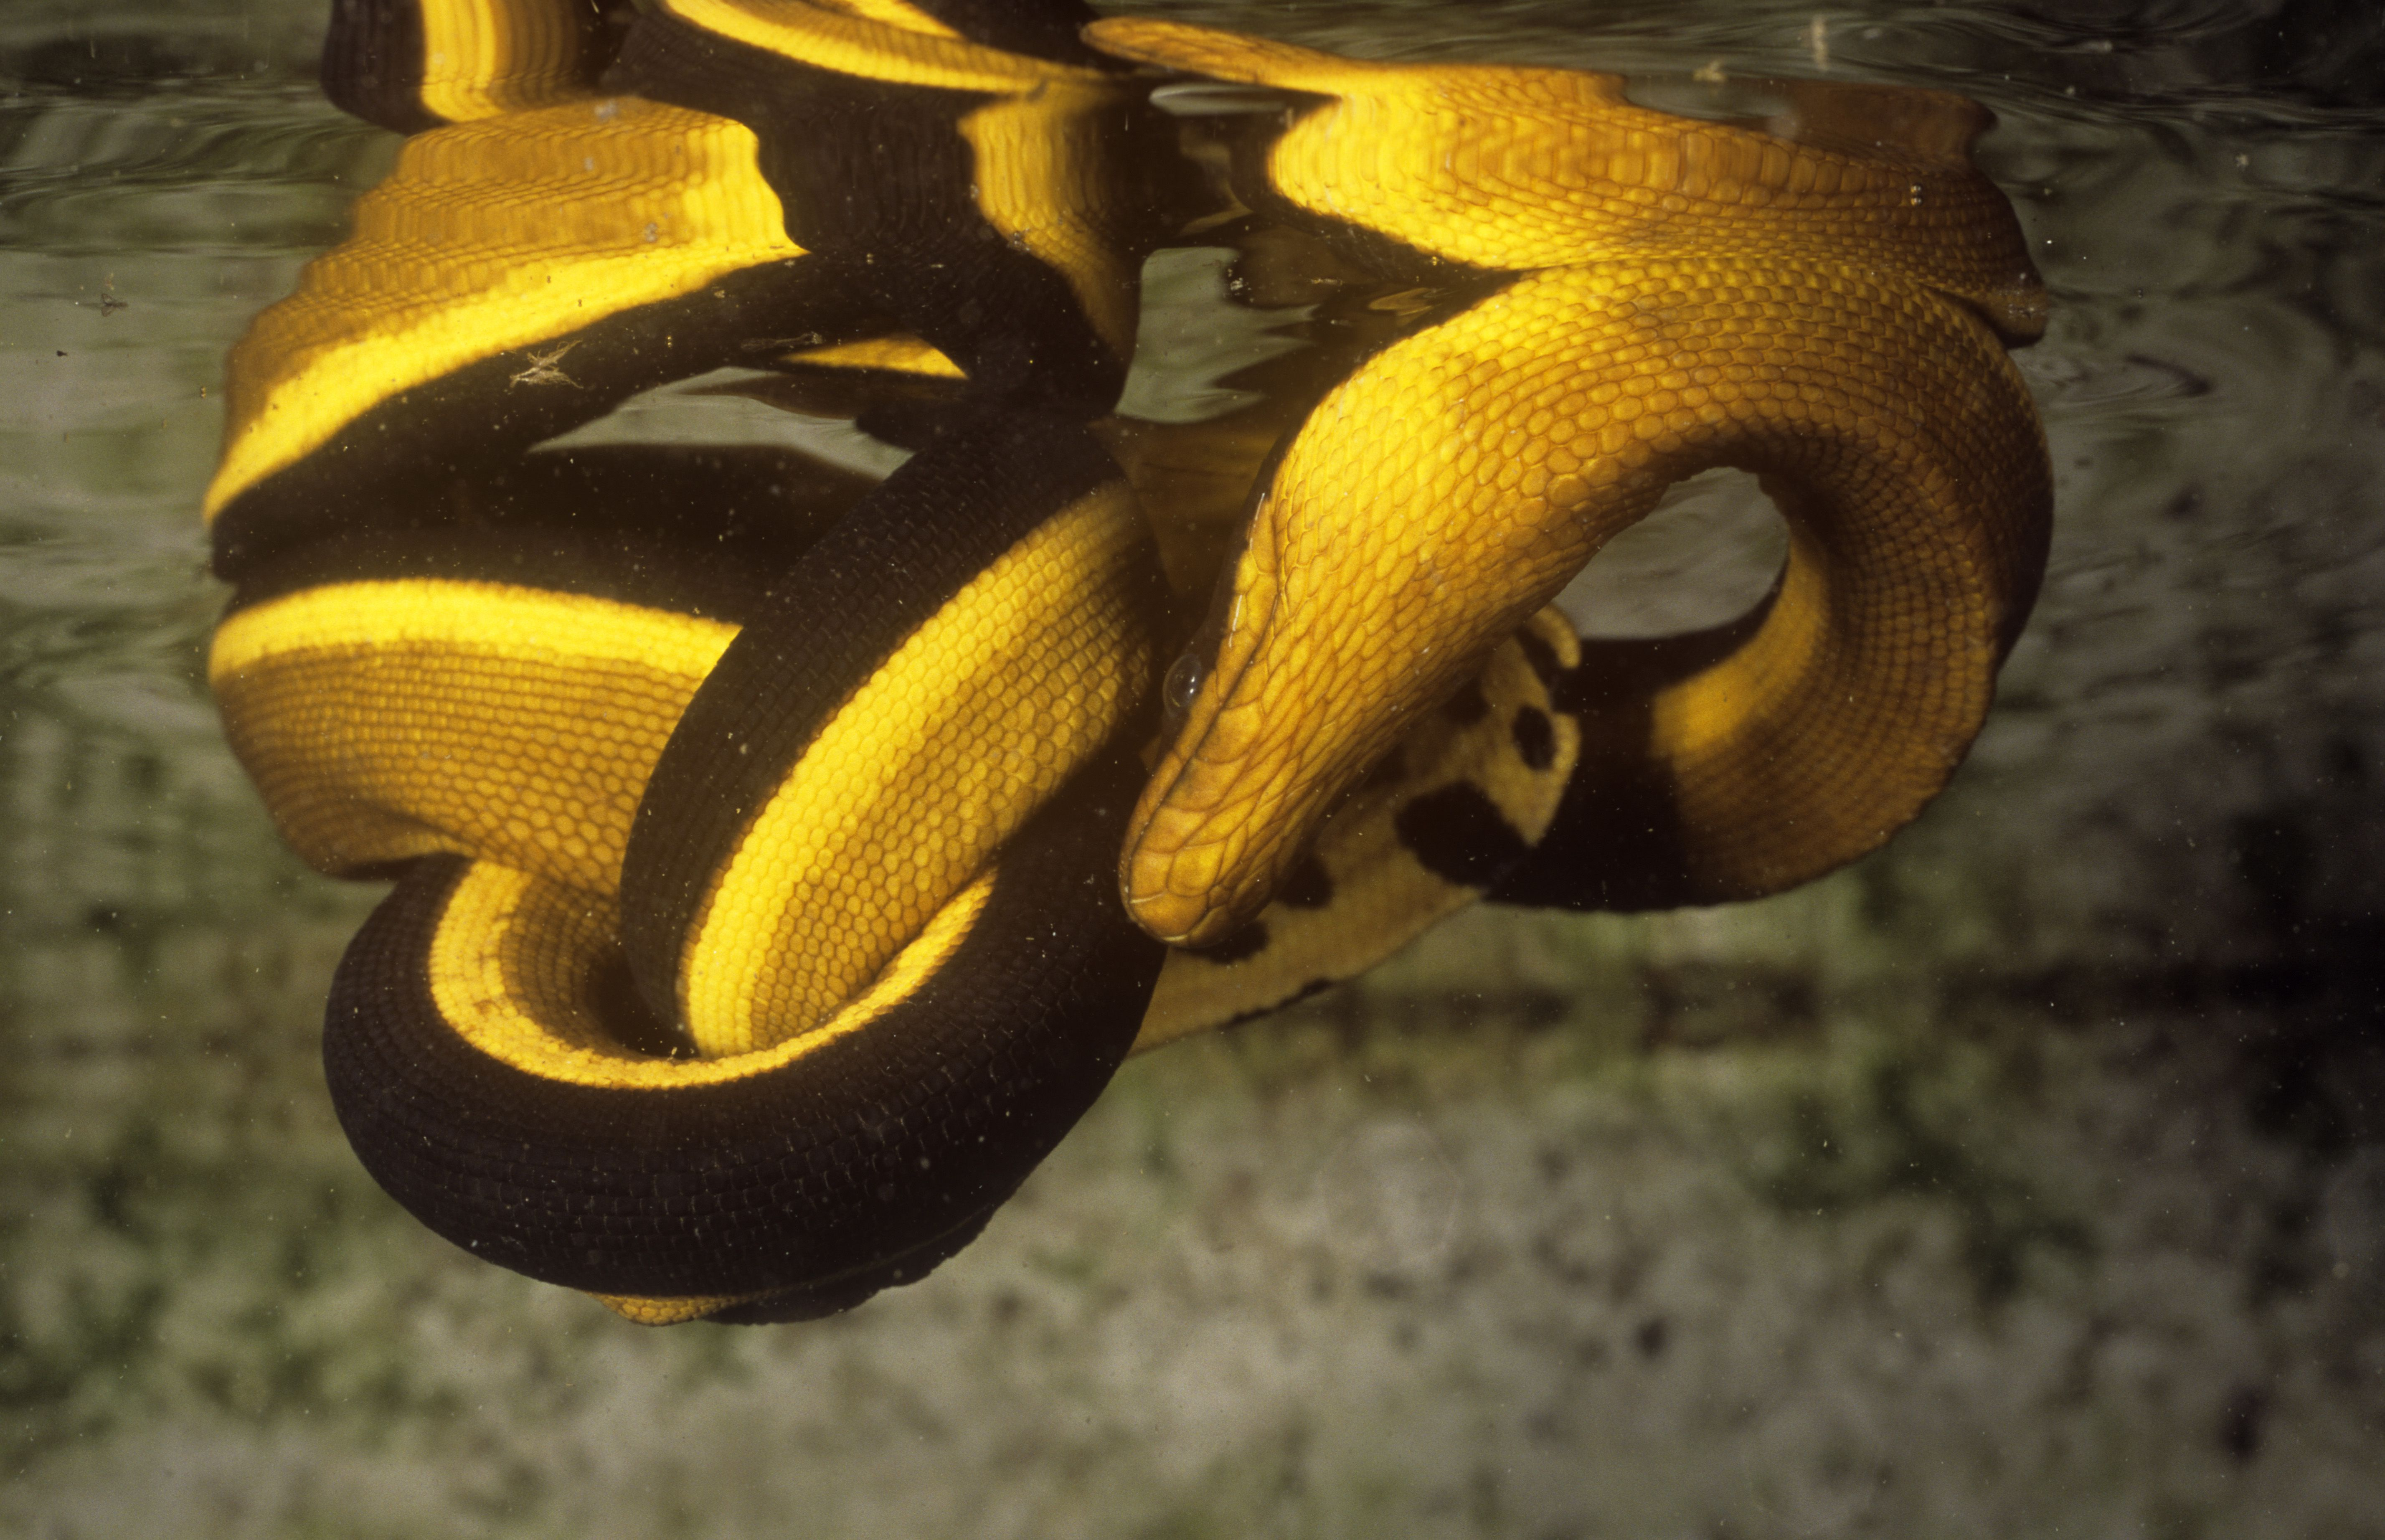 The so-called California sea snake is actually the yellow-bellied sea snake.